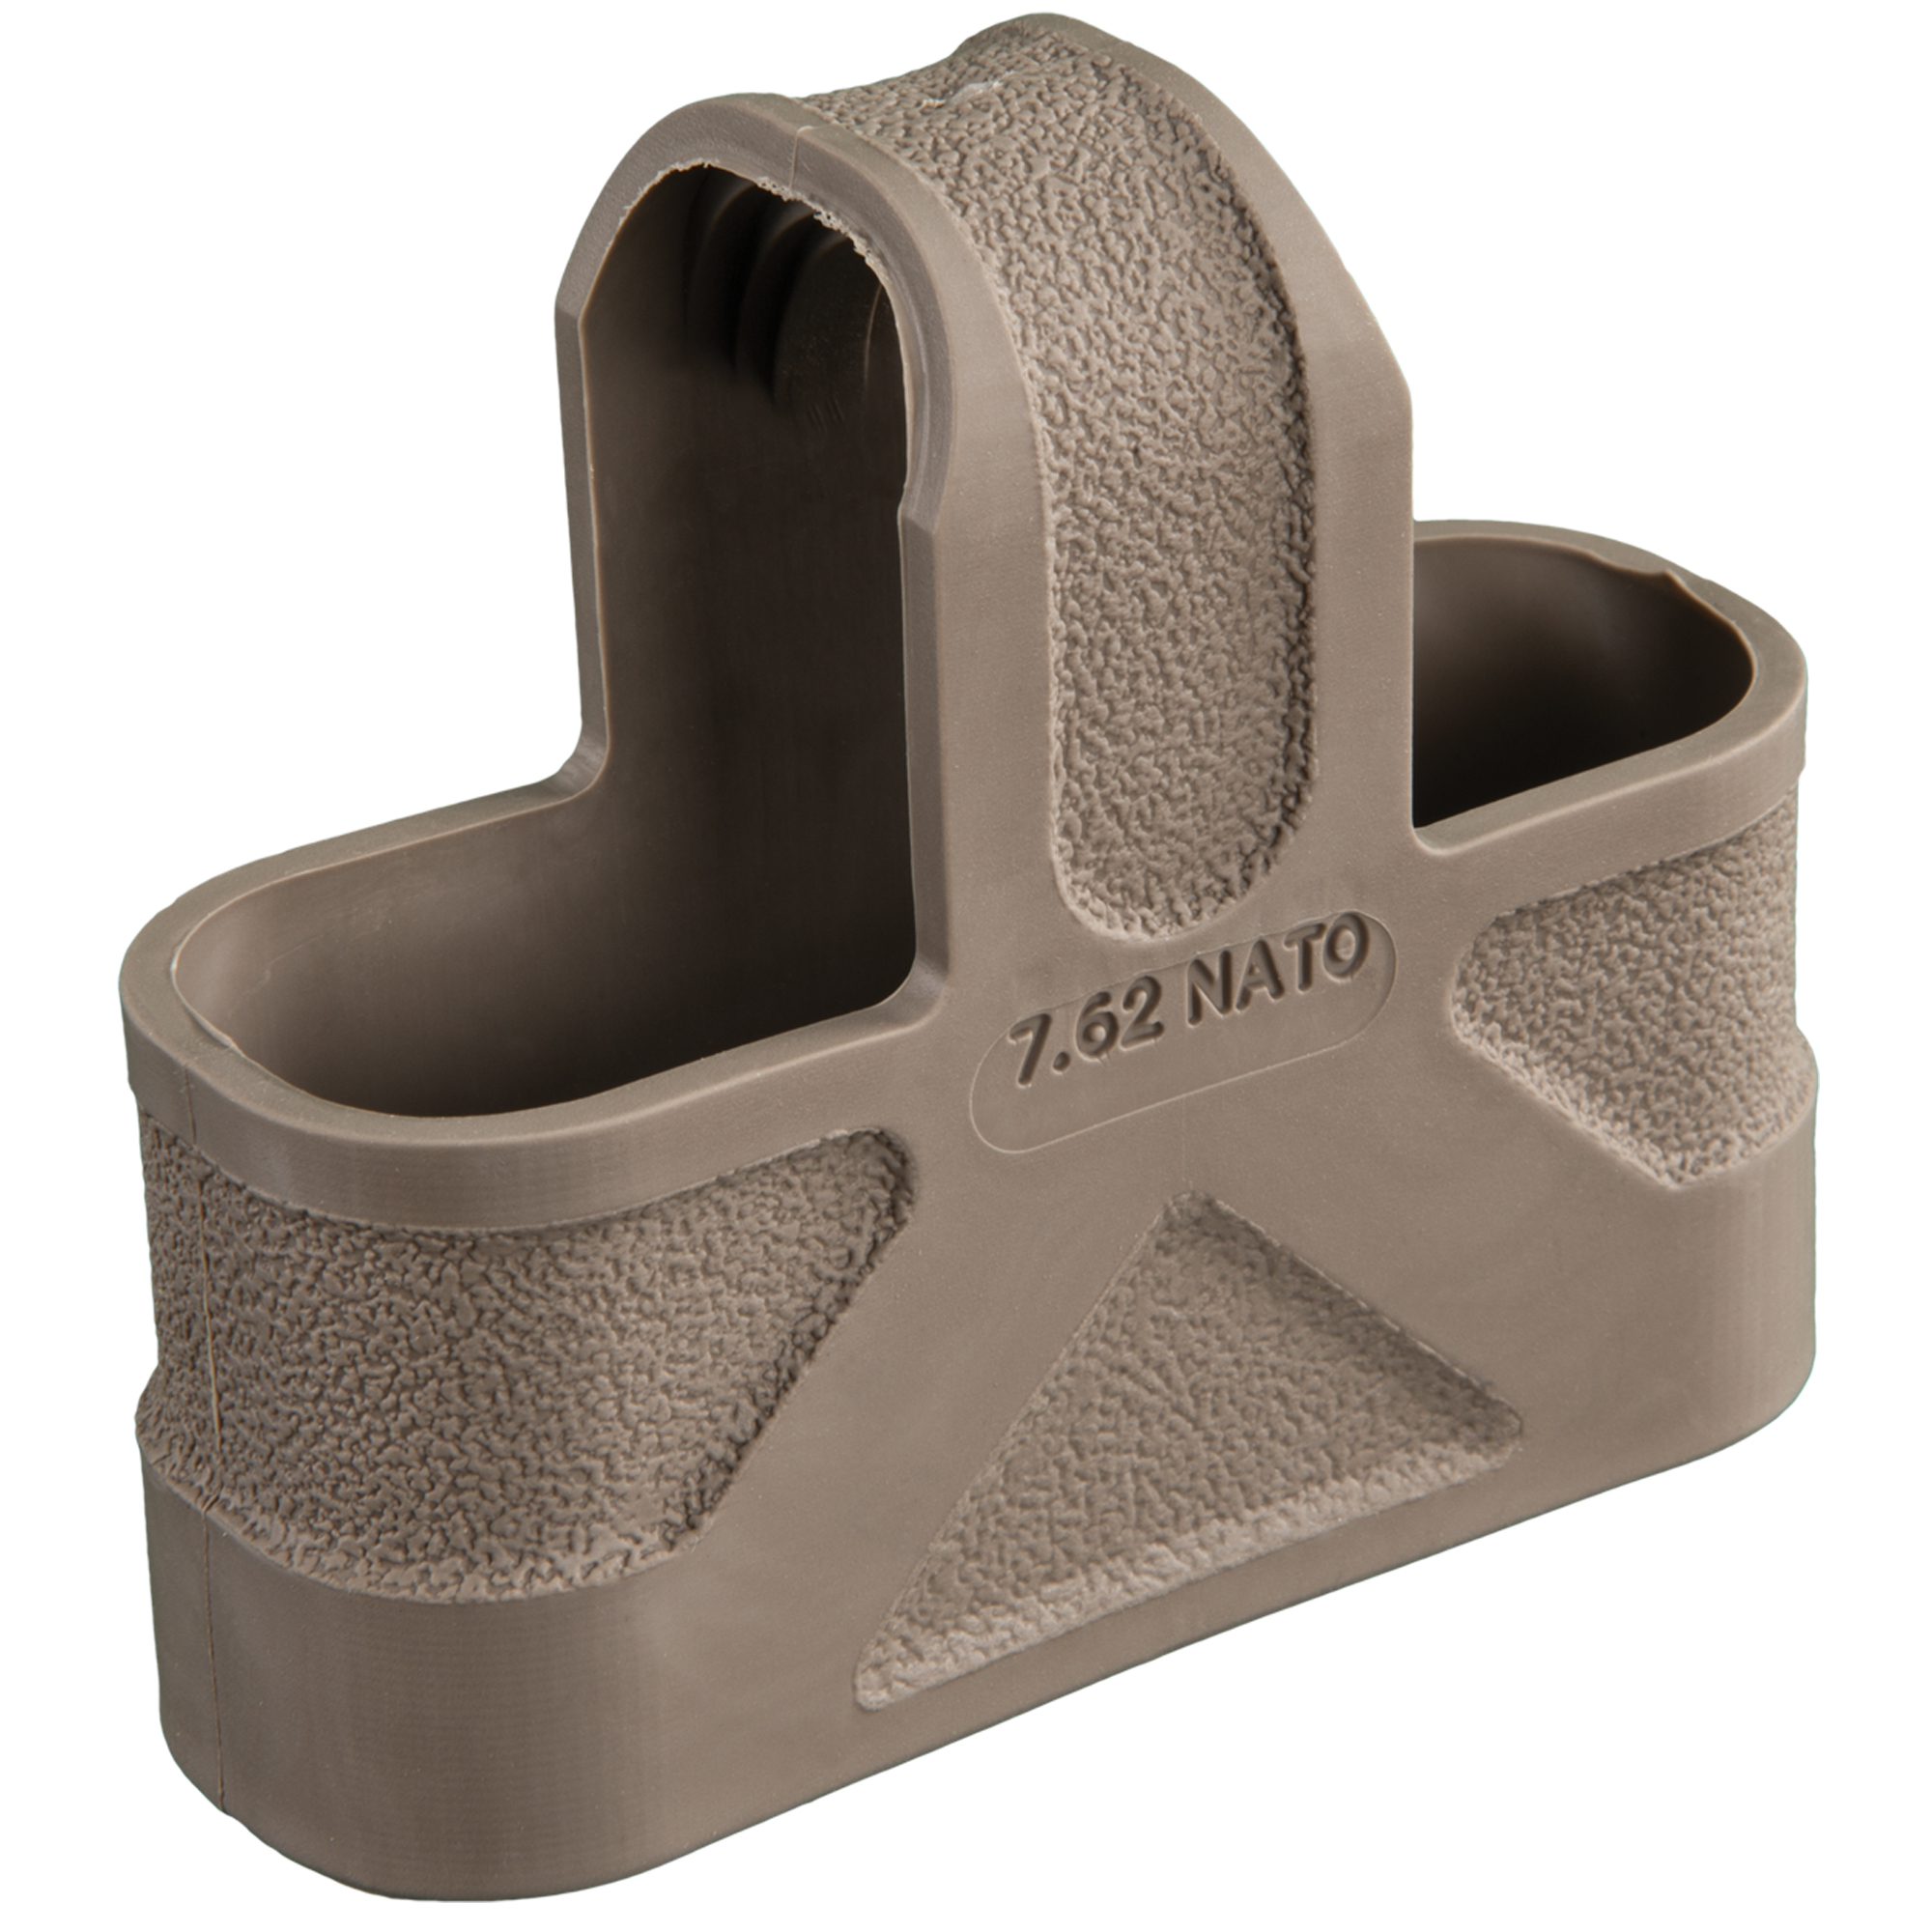 """When installed on the base of a rifle magazine"""" the original Magpul provides improved speed and controllability during high stress"""" tactical magazine changes. Durable synthetic rubber loop with recessed rough gripping surface. Quick and easy installation and removal. Patented design based upon the tried and true para-cord loops and duct-tape tabs currently in use with special warfare units worldwide."""